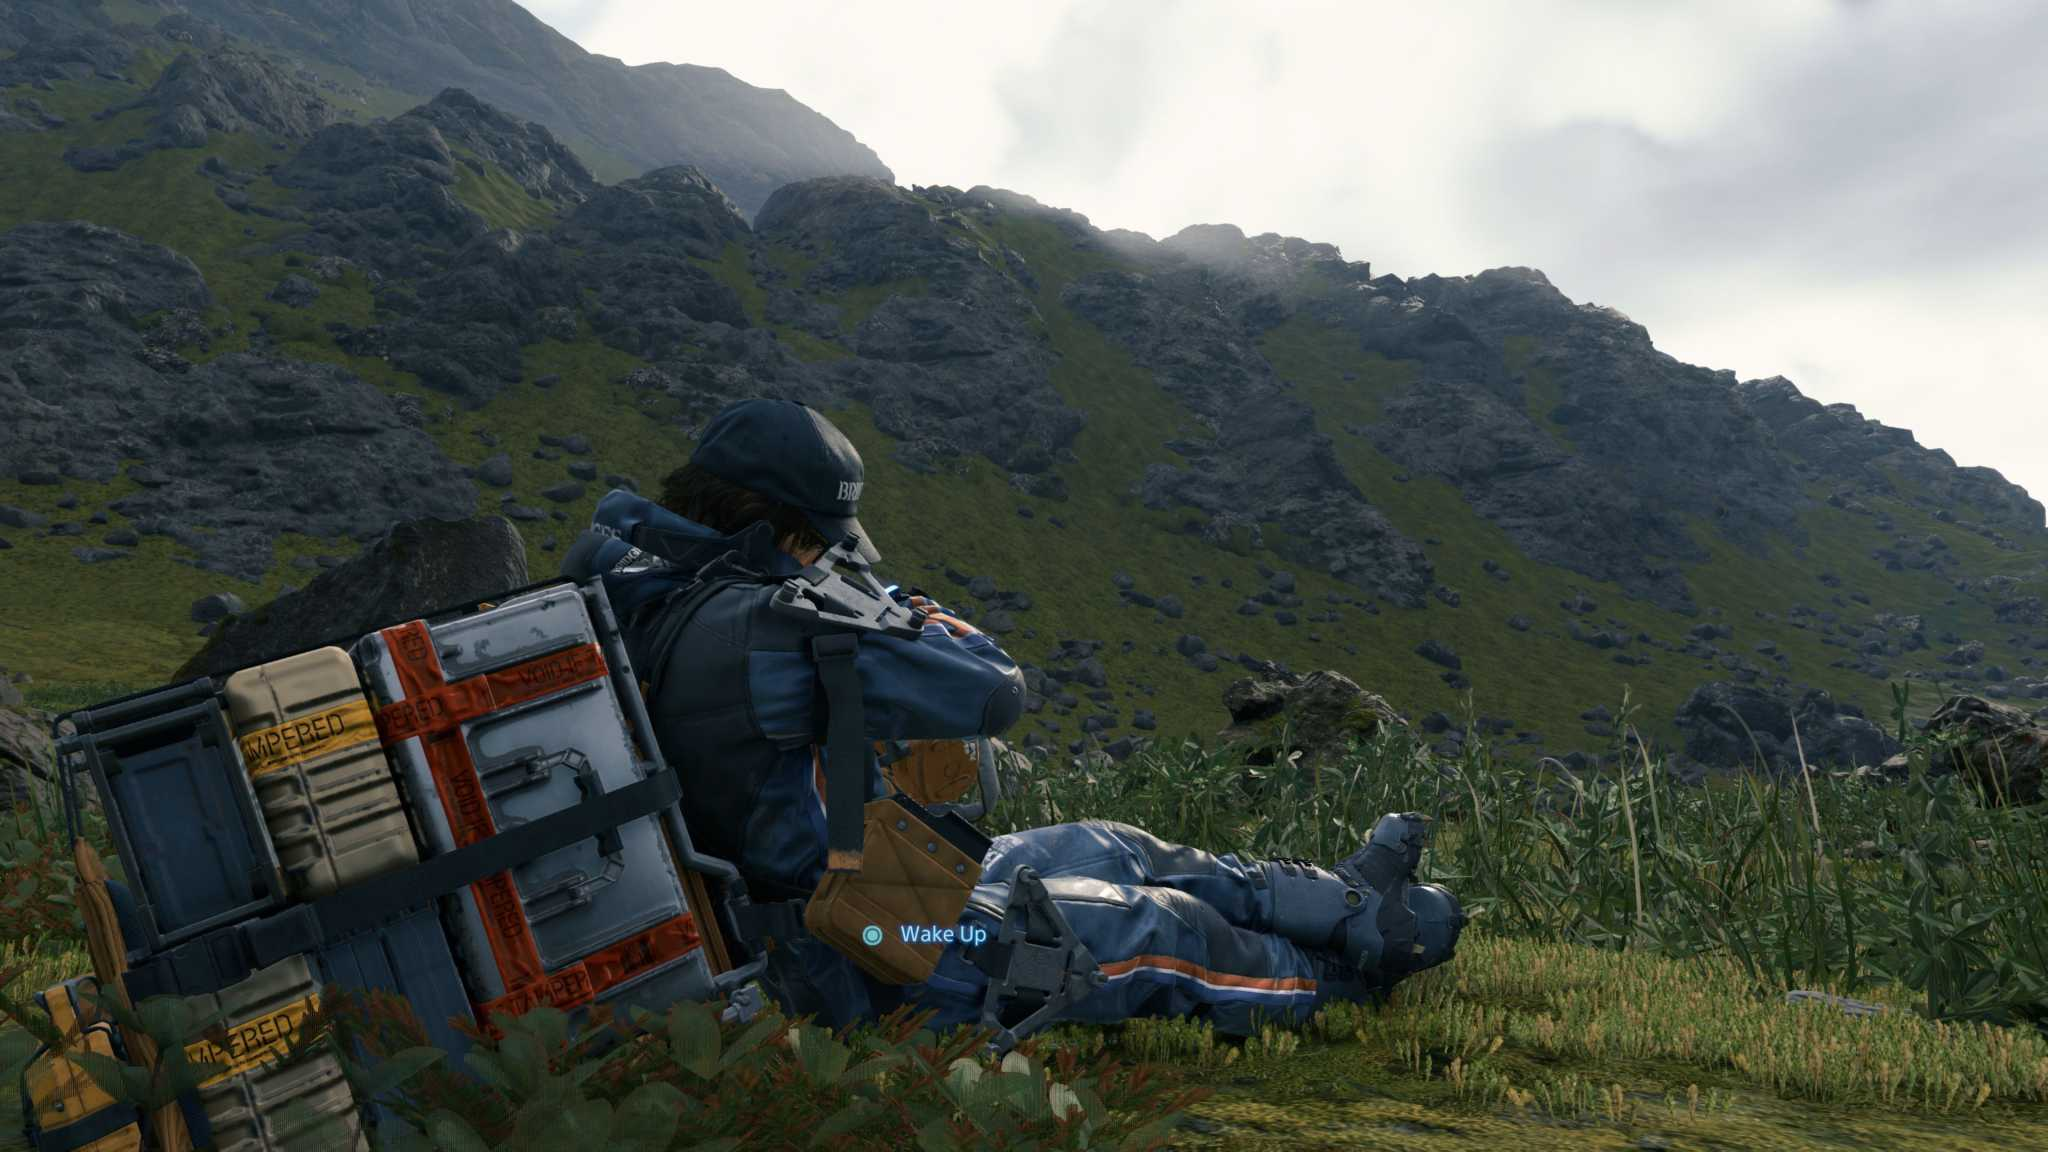 Death Stranding tips: Pack extra shoes. And blood. Seriously.